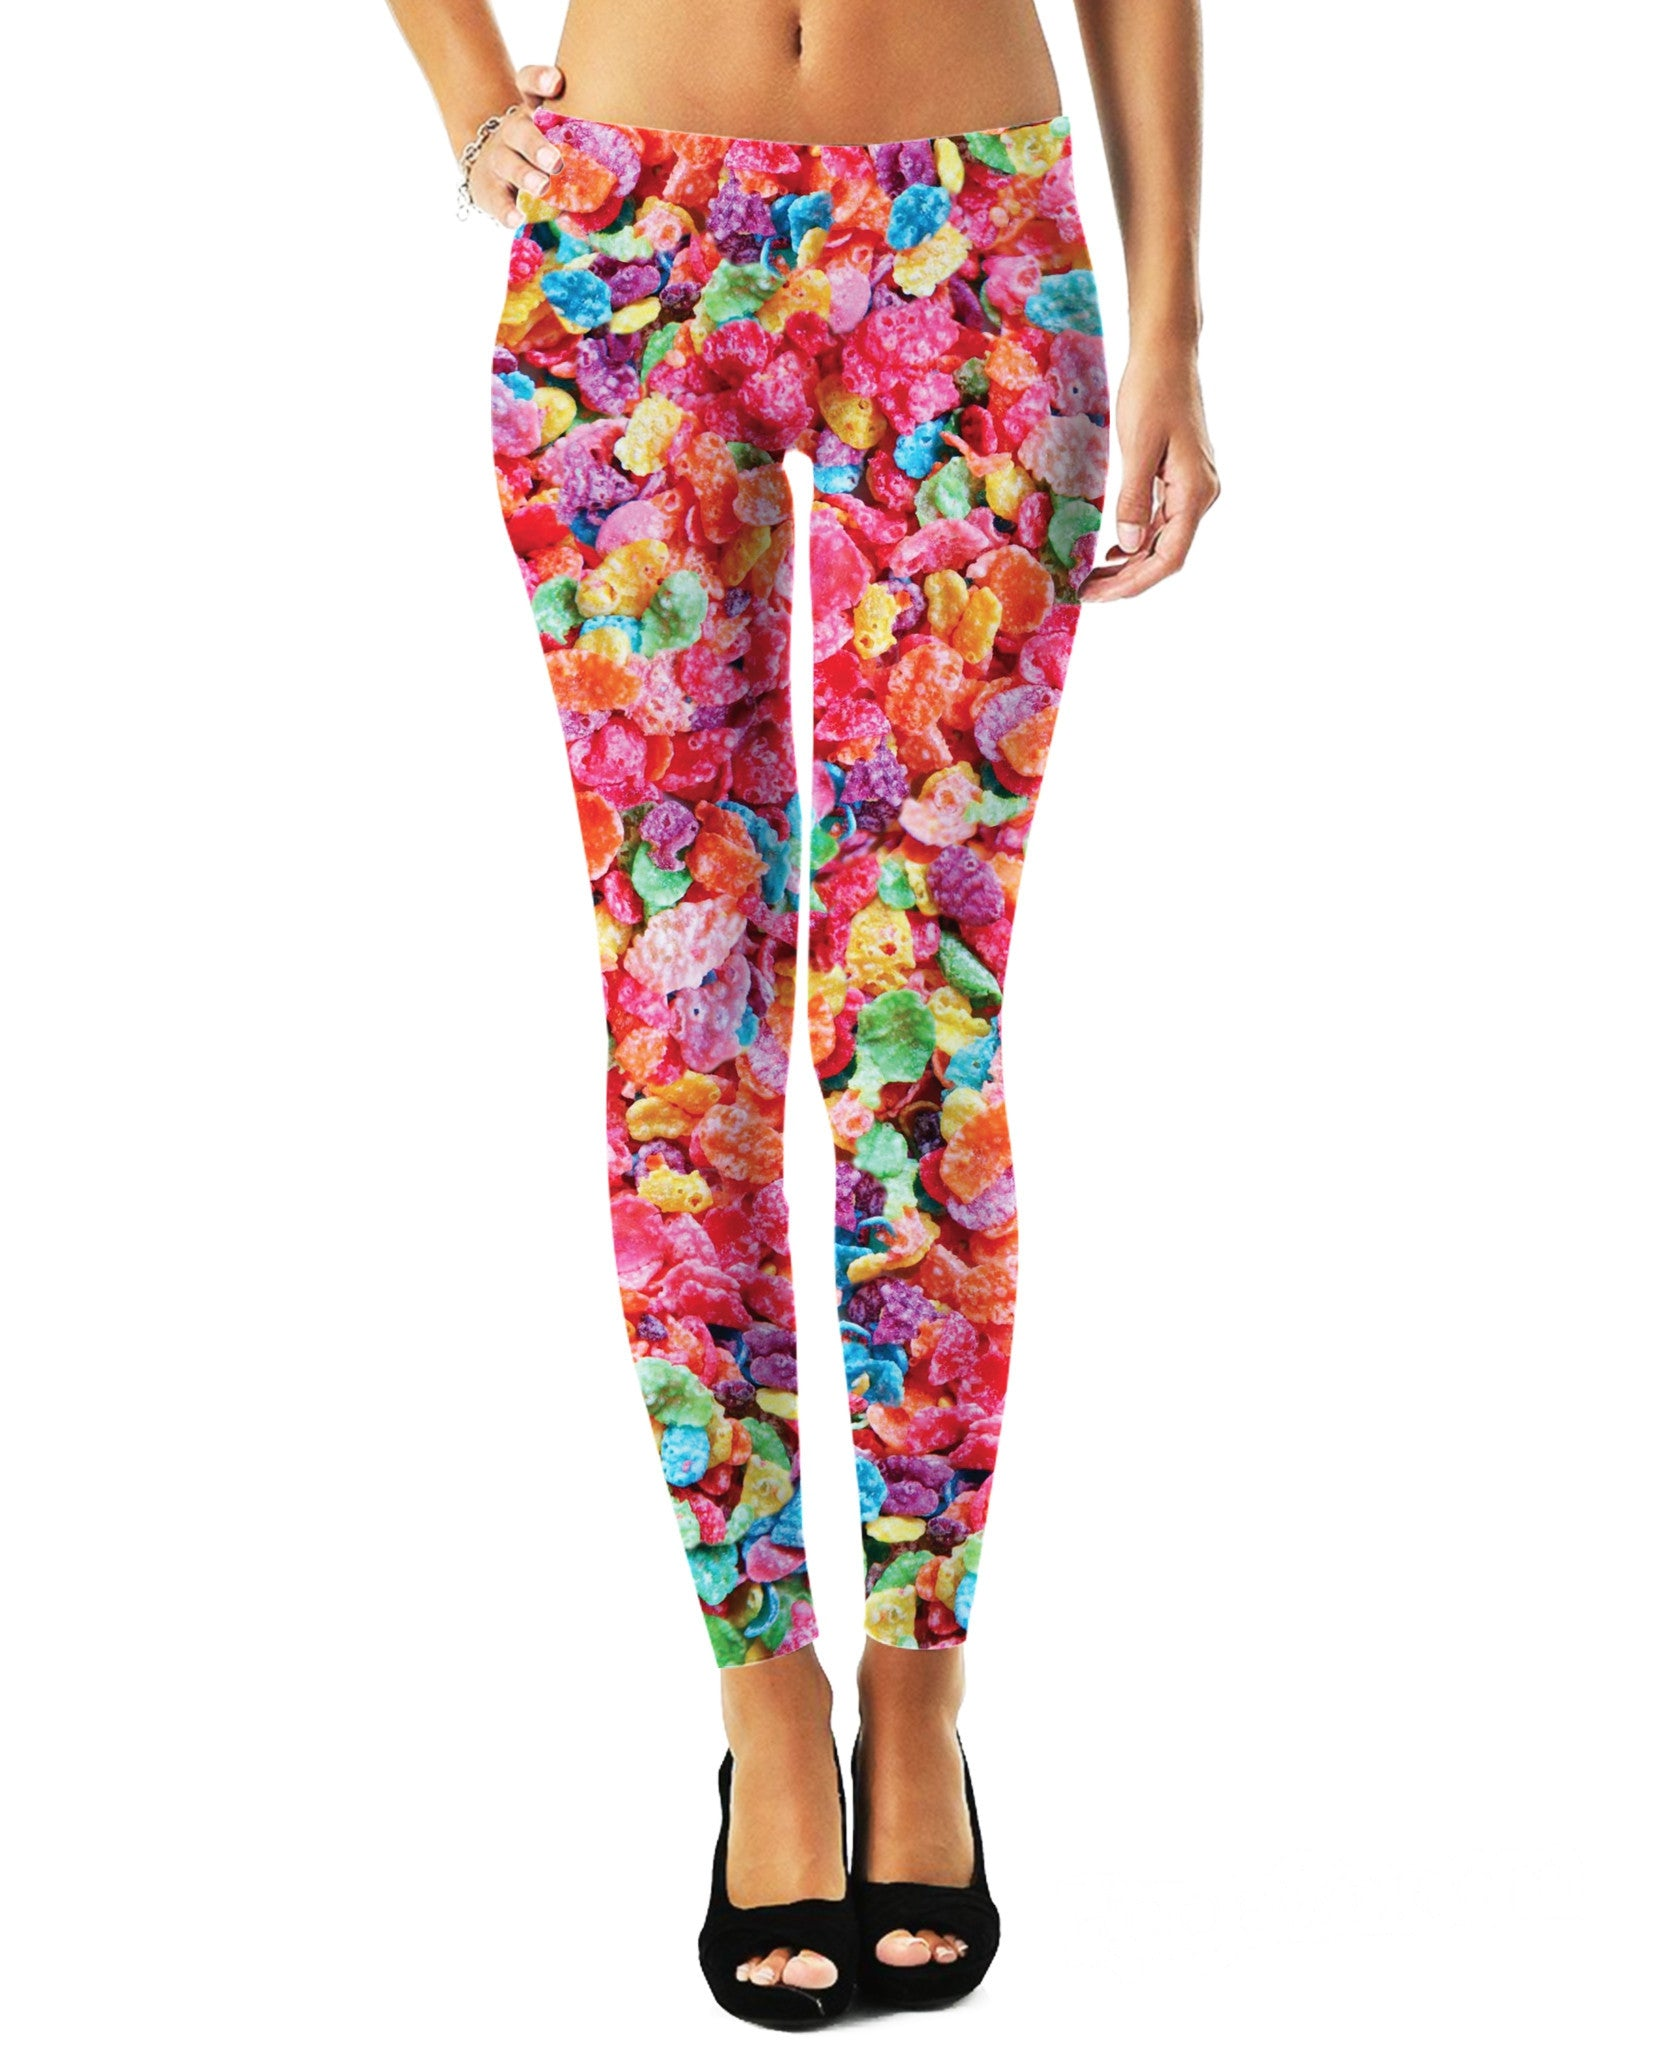 Fruity Pebble Leggings - TShirtsRUS.co